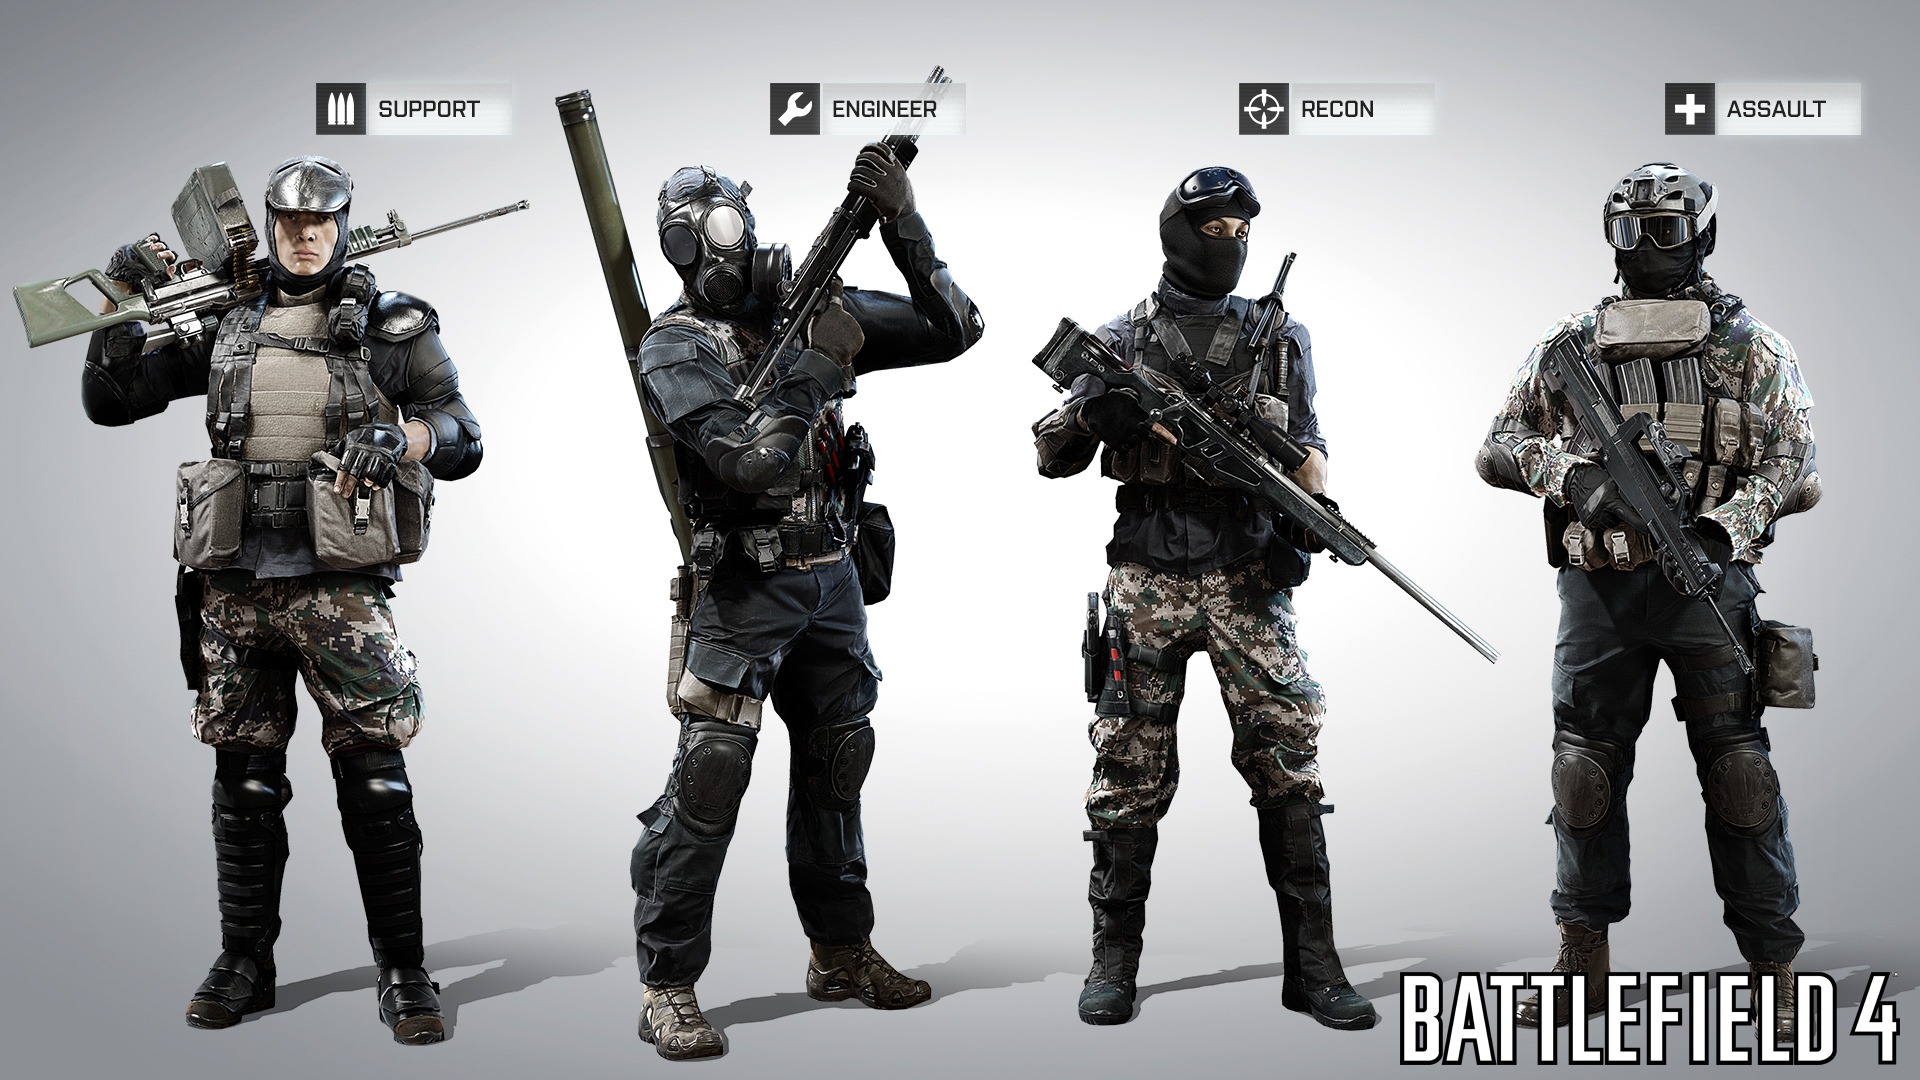 Battlefield 3 pc online players in dating 4